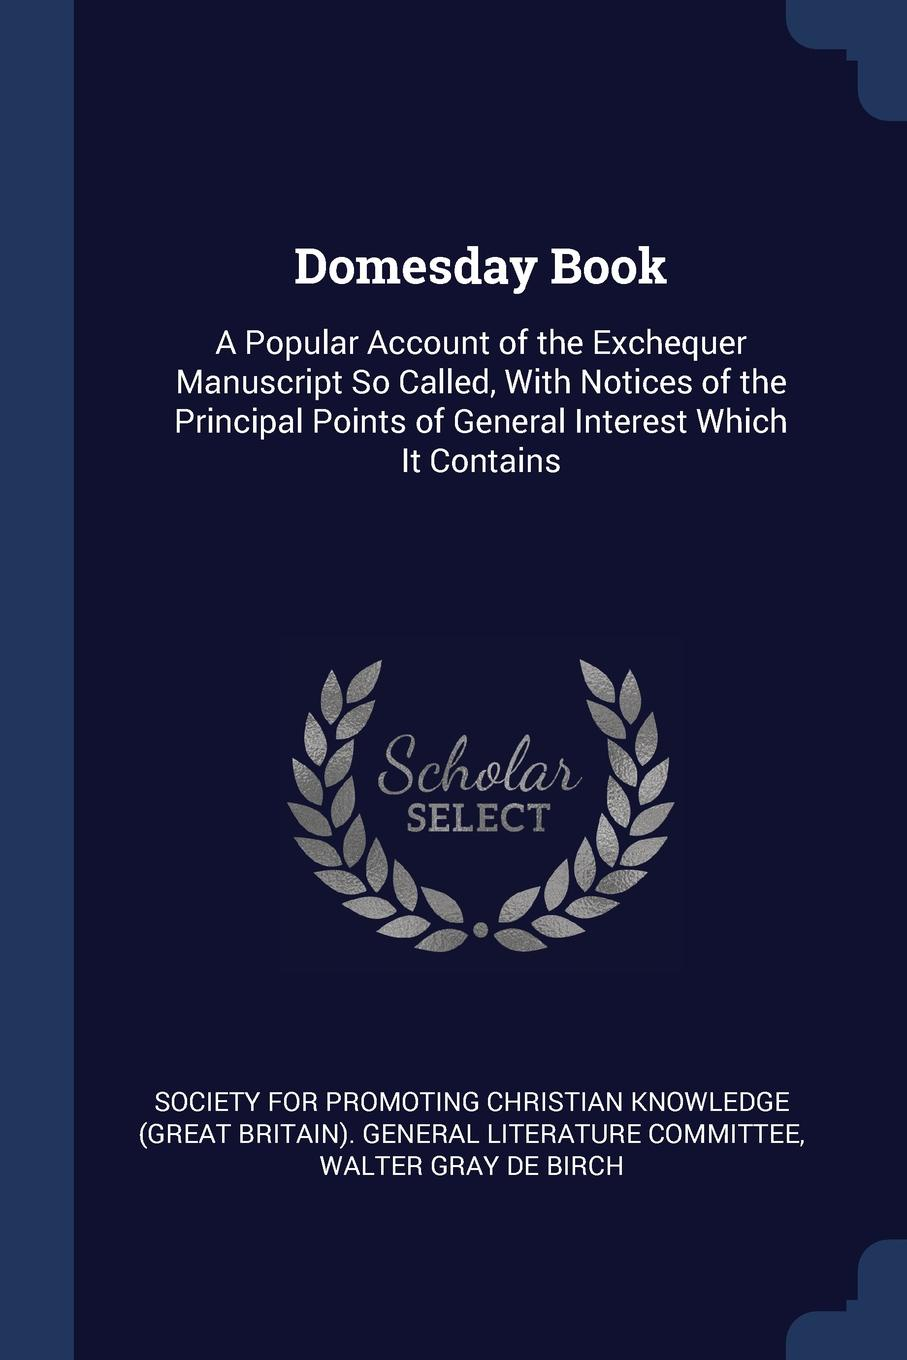 Walter Gray De Birch Domesday Book. A Popular Account of the Exchequer Manuscript So Called, With Notices Principal Points General Interest Which It Contains